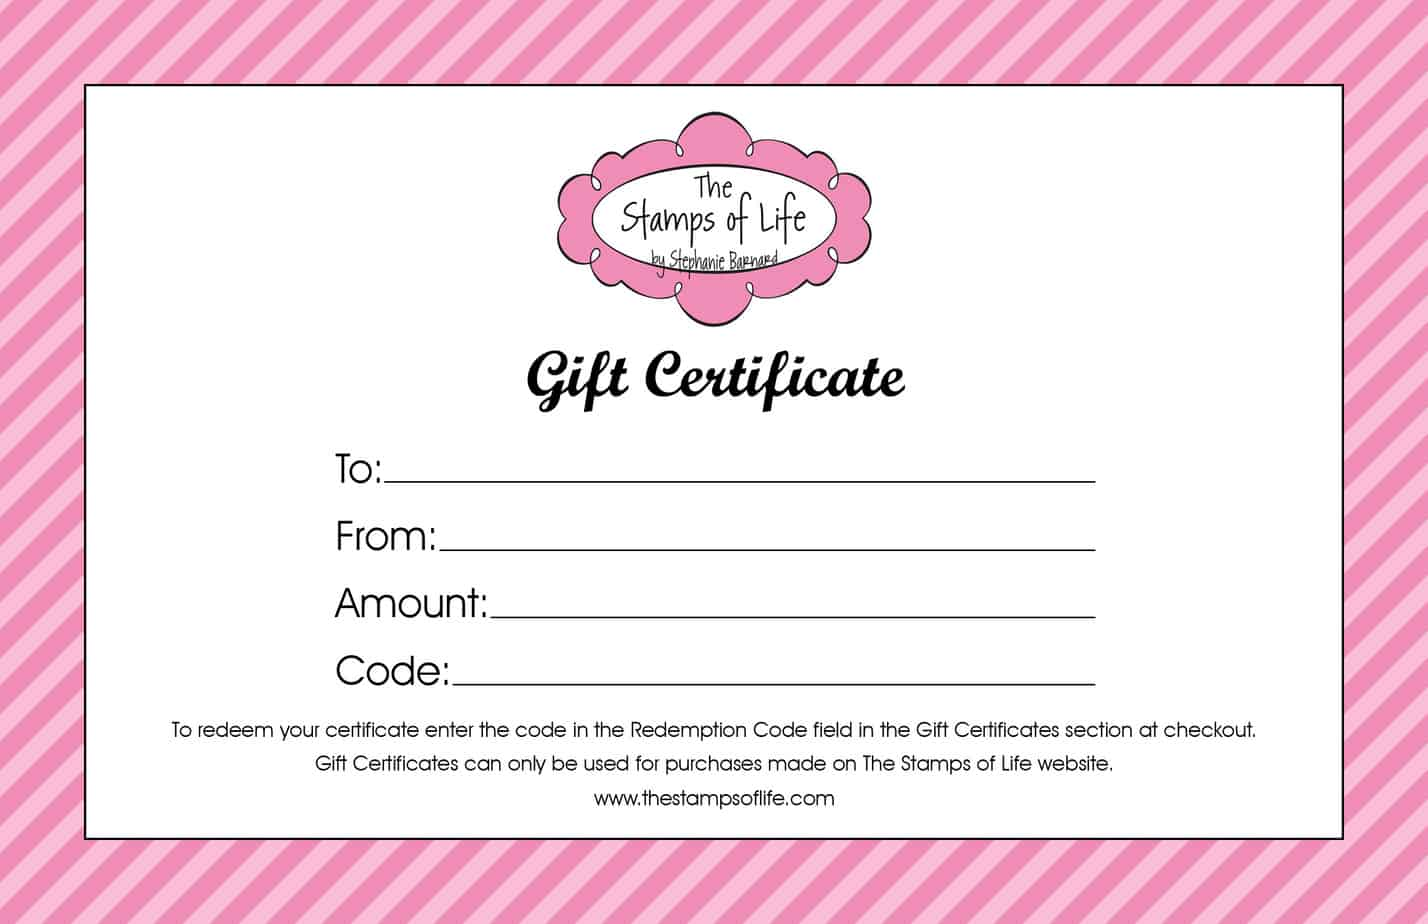 Sample Gift Vouchers how to make certificates in word – Gift Certificate Wording